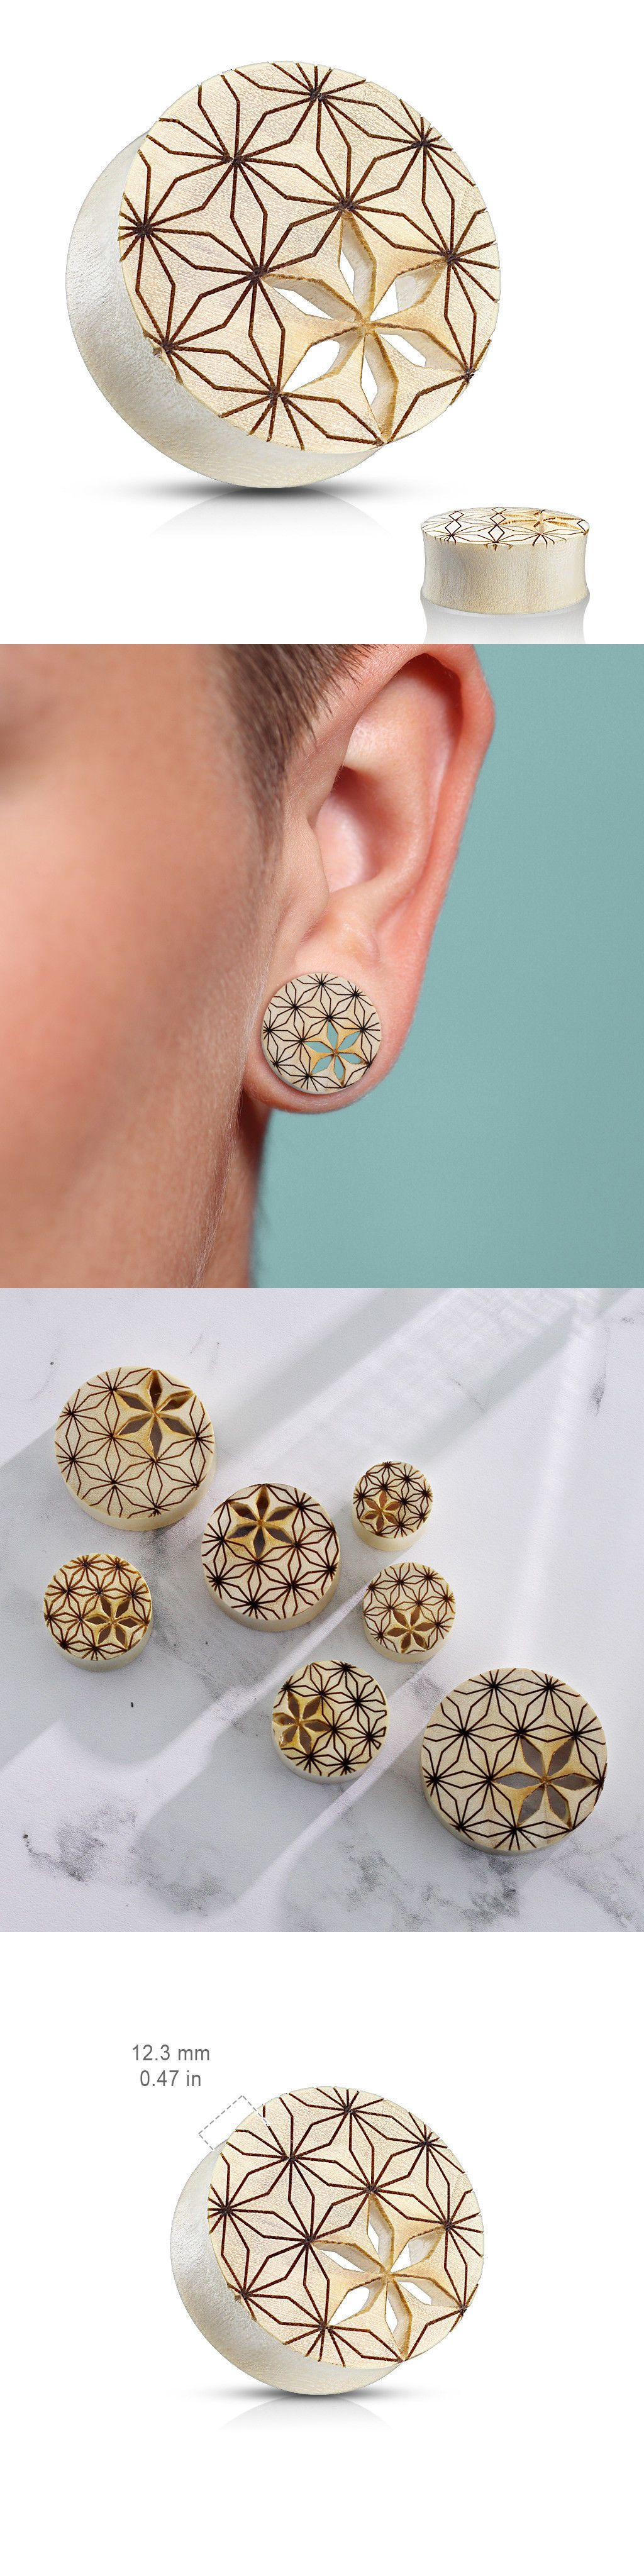 Pimple under nose piercing  PAIR Flower of Life Cut Out Blonde Crocodile Wood Saddle Plugs